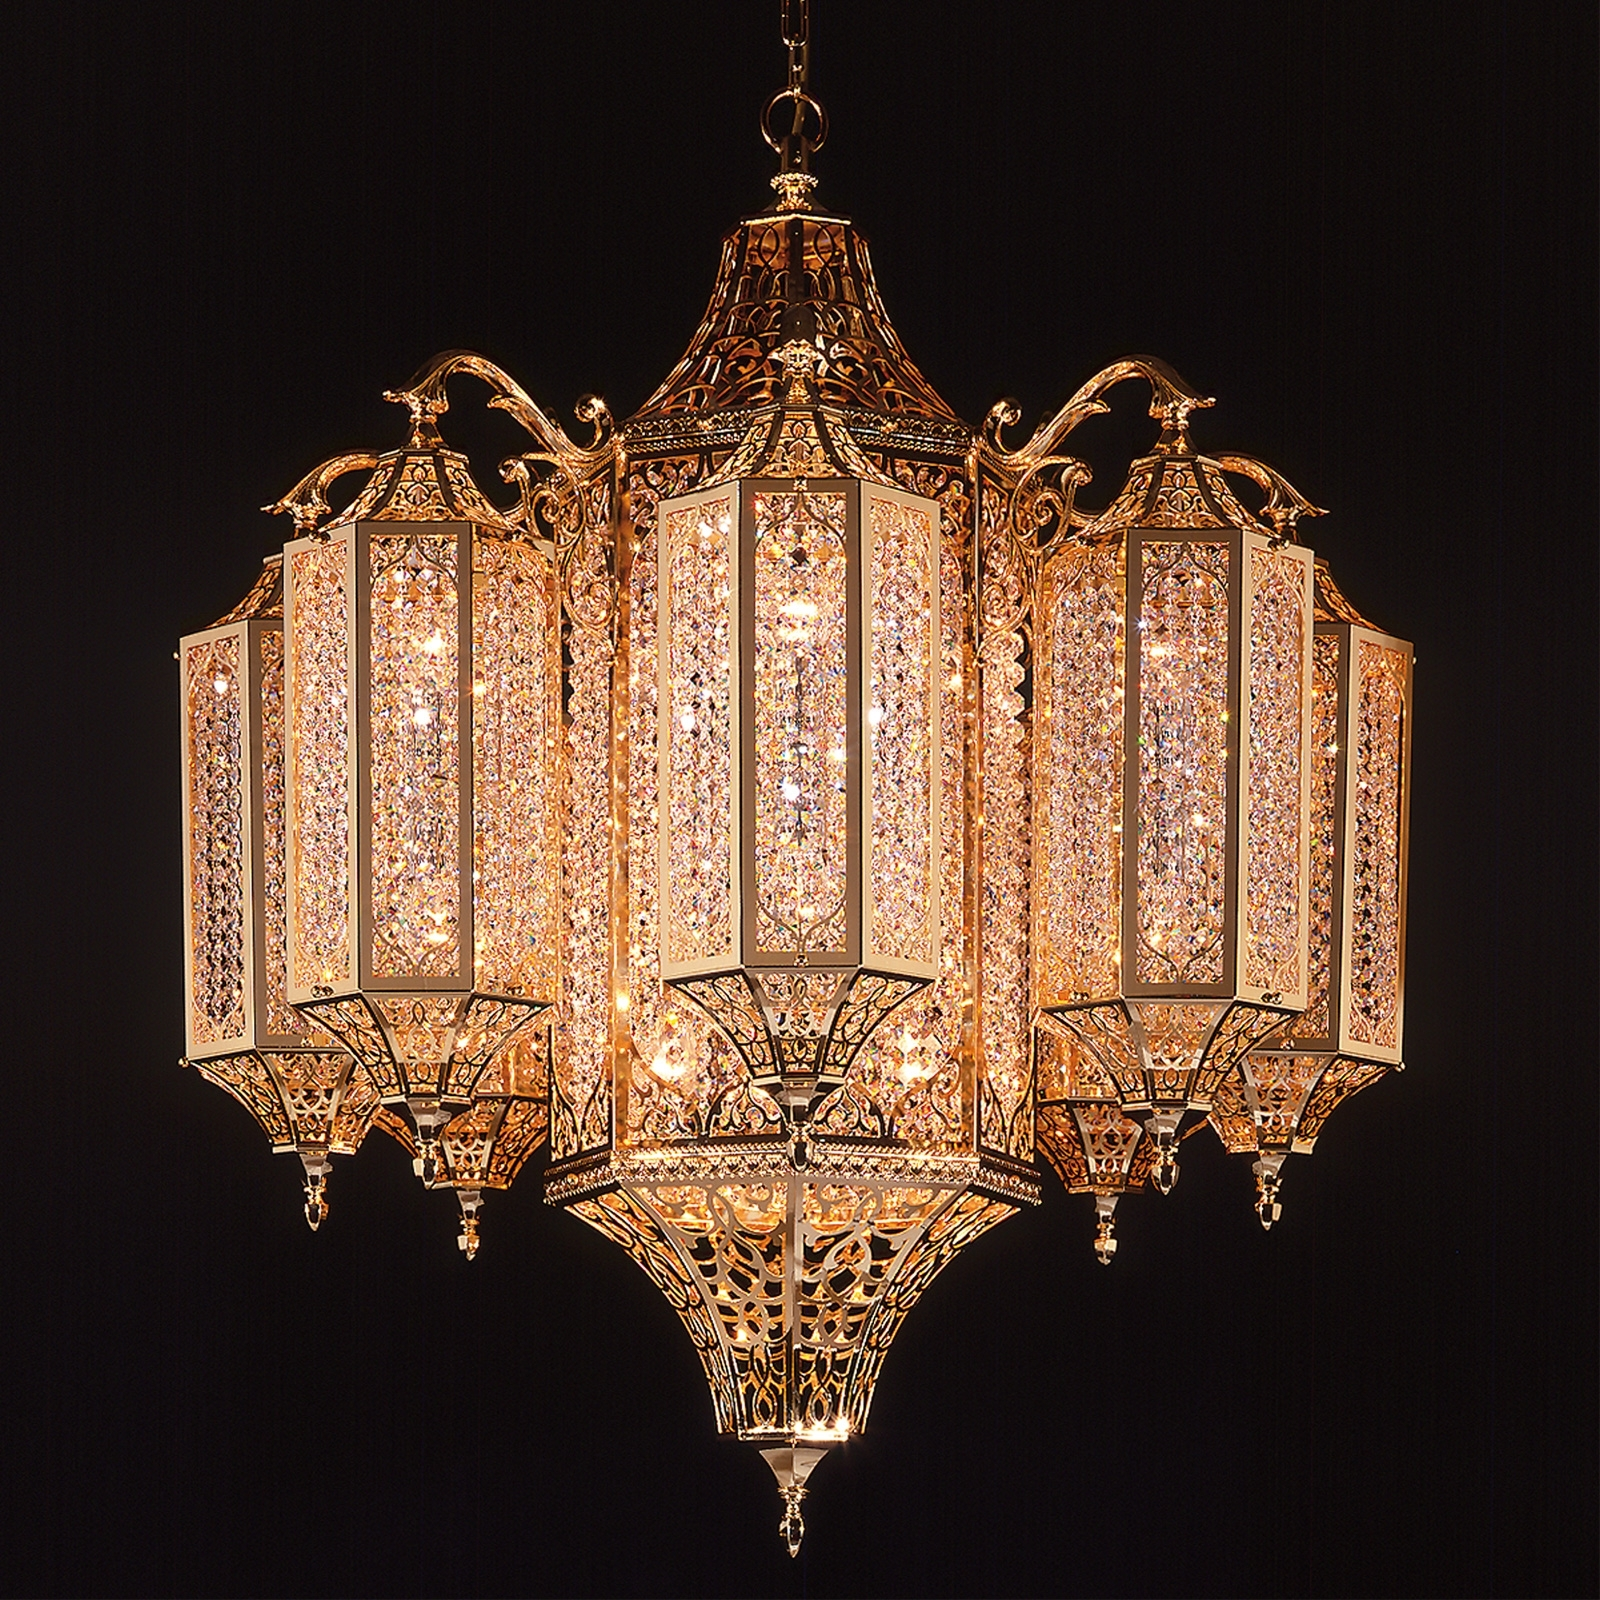 Popular Expensive Chandeliers Intended For Light : Luxuryndeliers Expensivendeliersluxury Crystal Brands And (View 16 of 20)